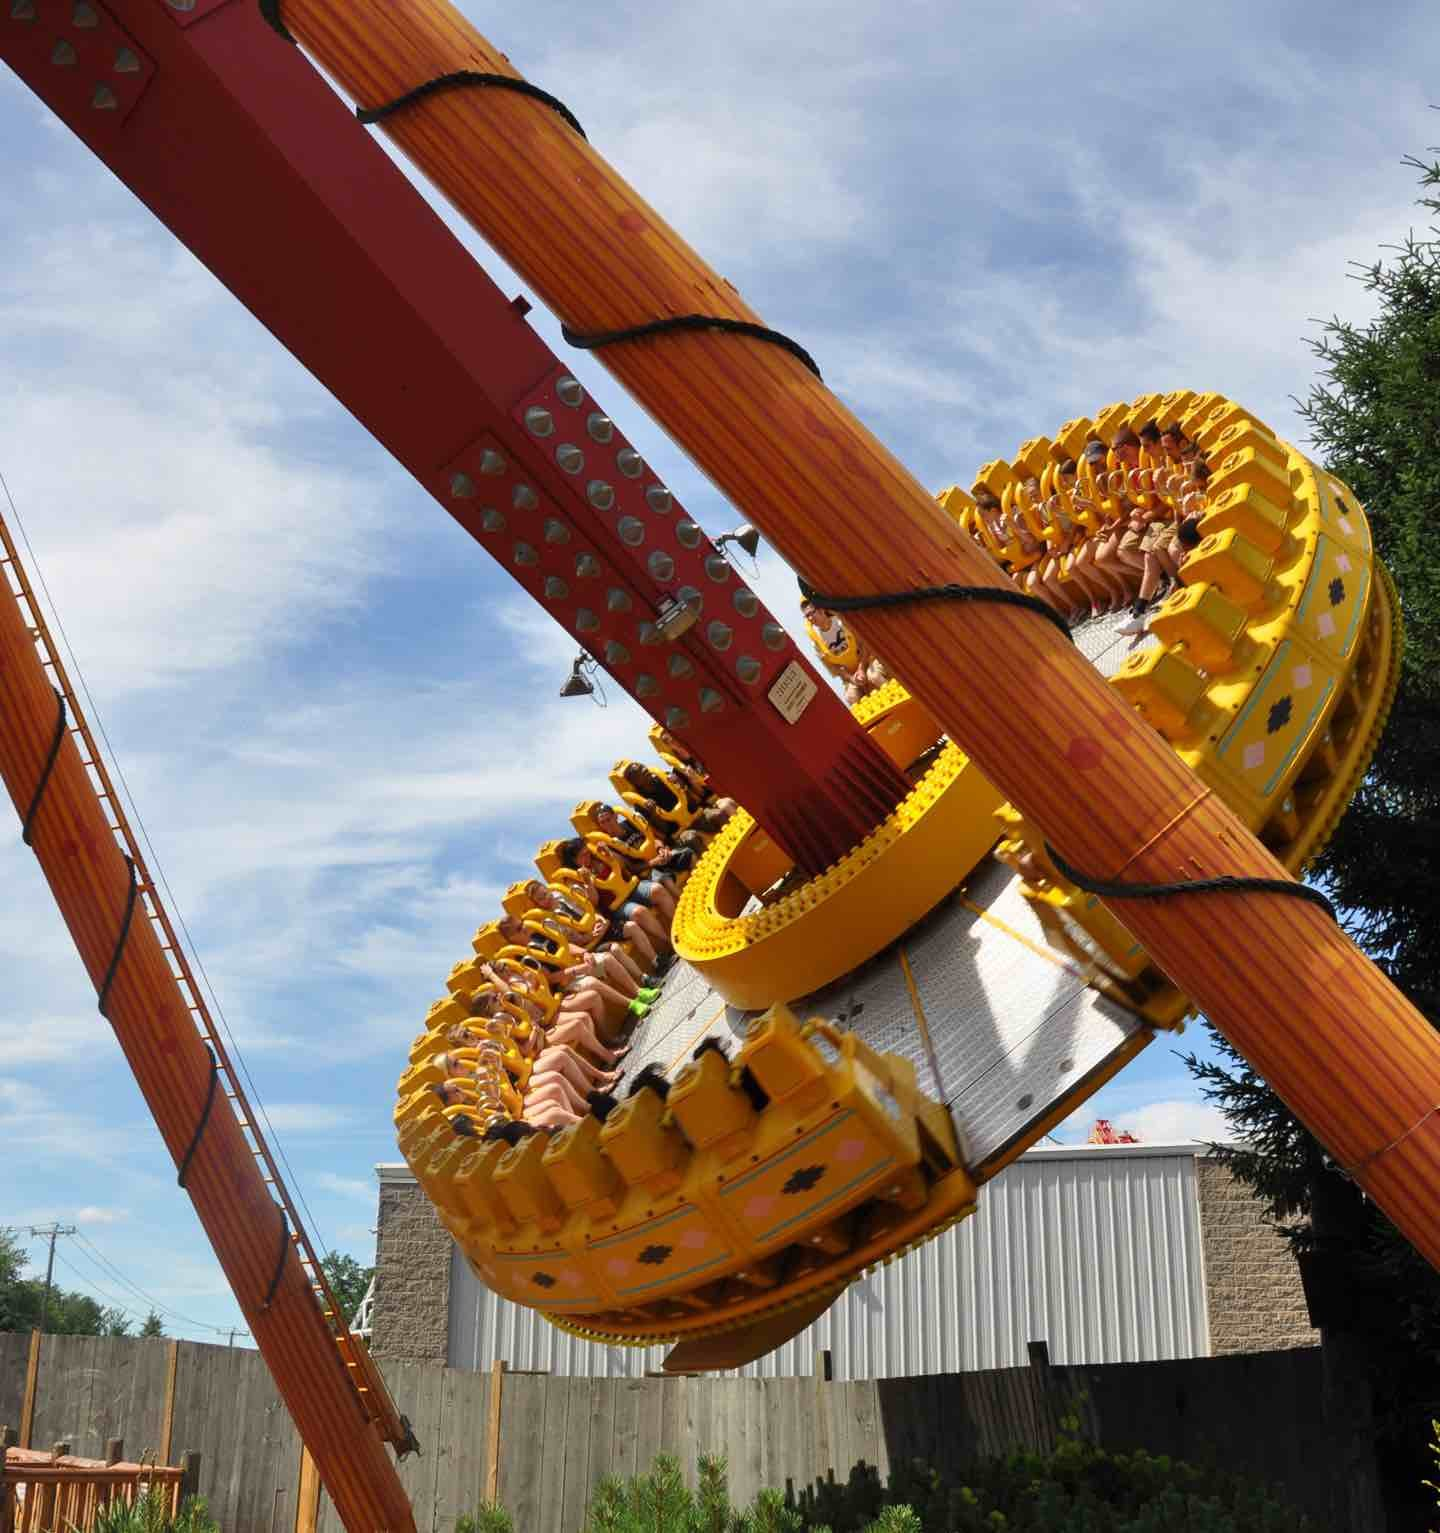 Giant spinning ride.